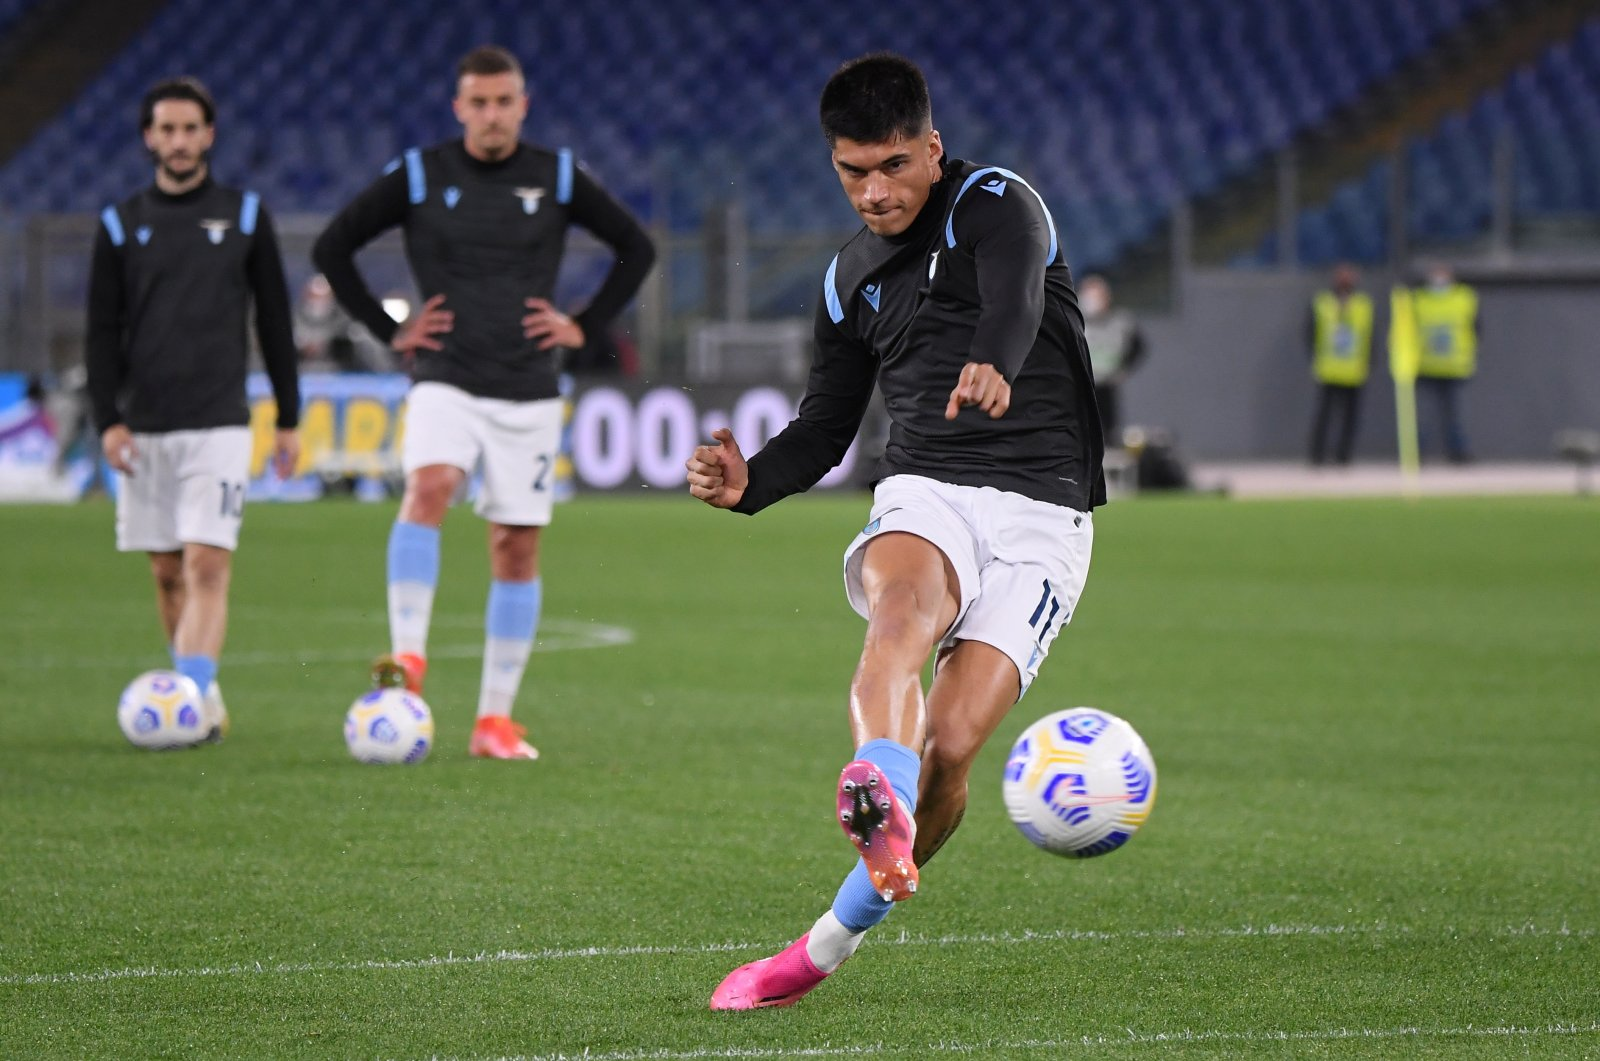 Lazio's Joaquin Correa during warmup before a Serie A match against AC Milan, Stadio Olimpico, Rome, Italy, April 26, 2021. (Reuters Photo)